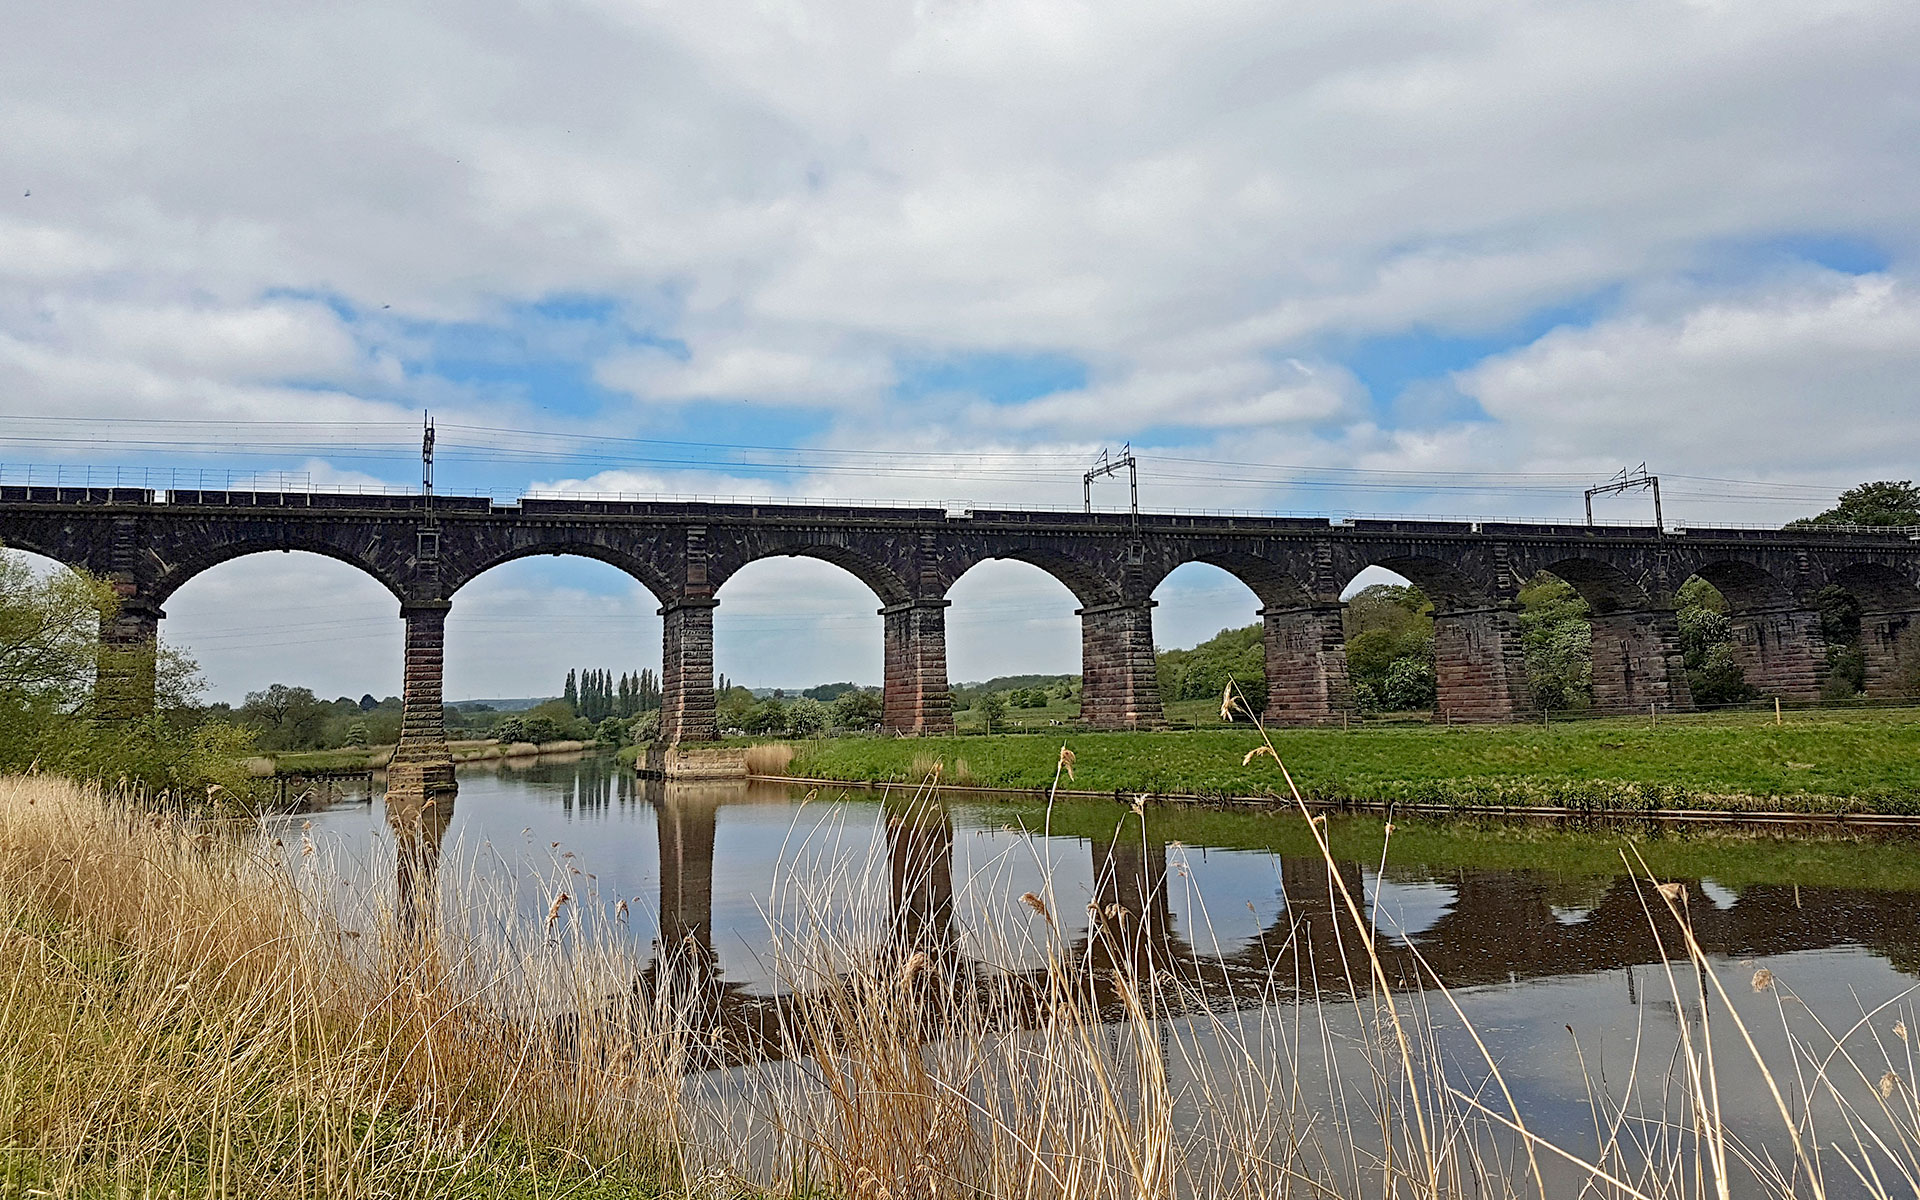 Dutton Railway Viaduct